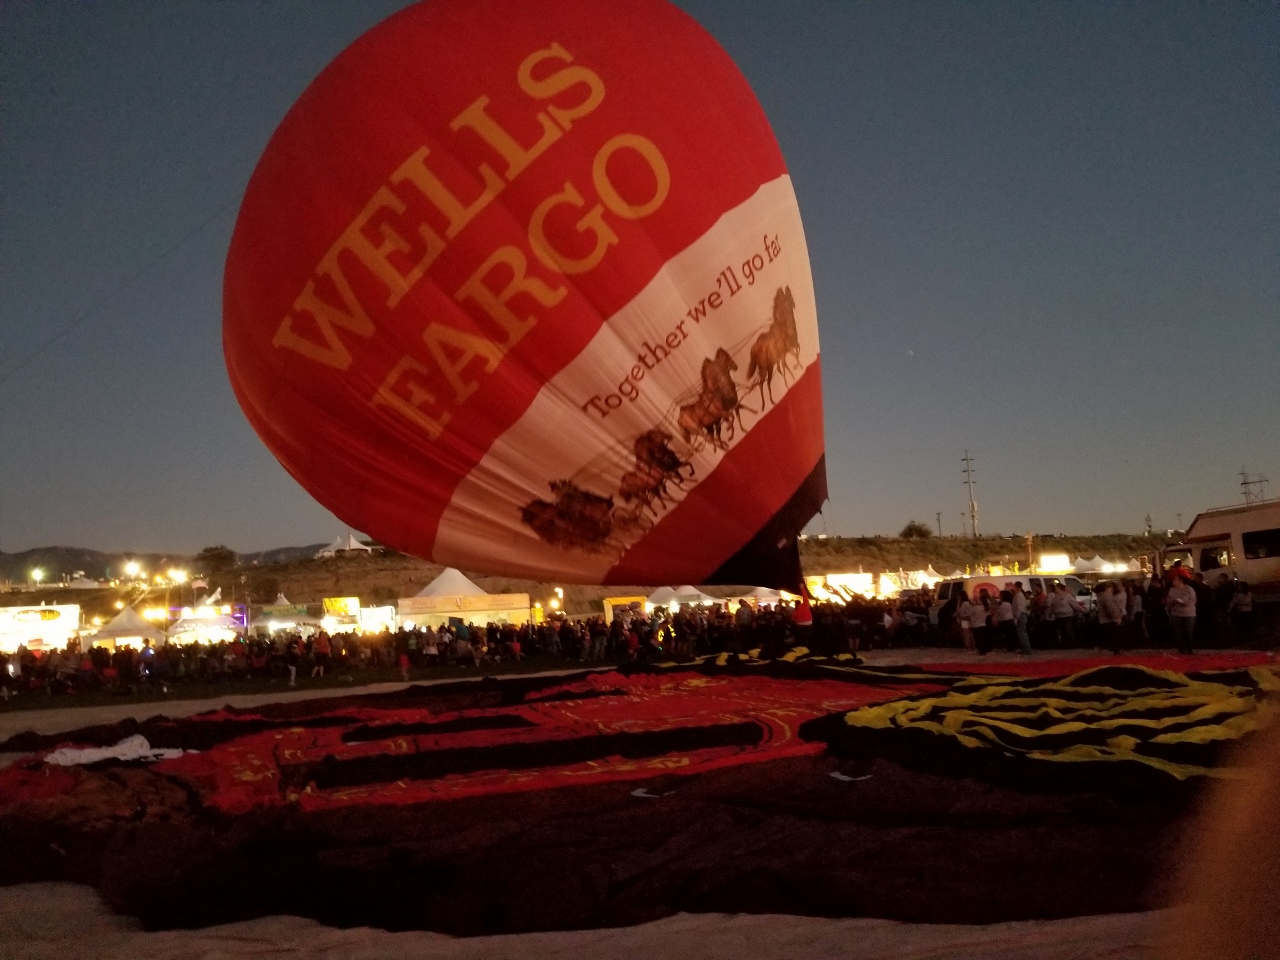 The Wells Fargo Balloons at the Fiesta